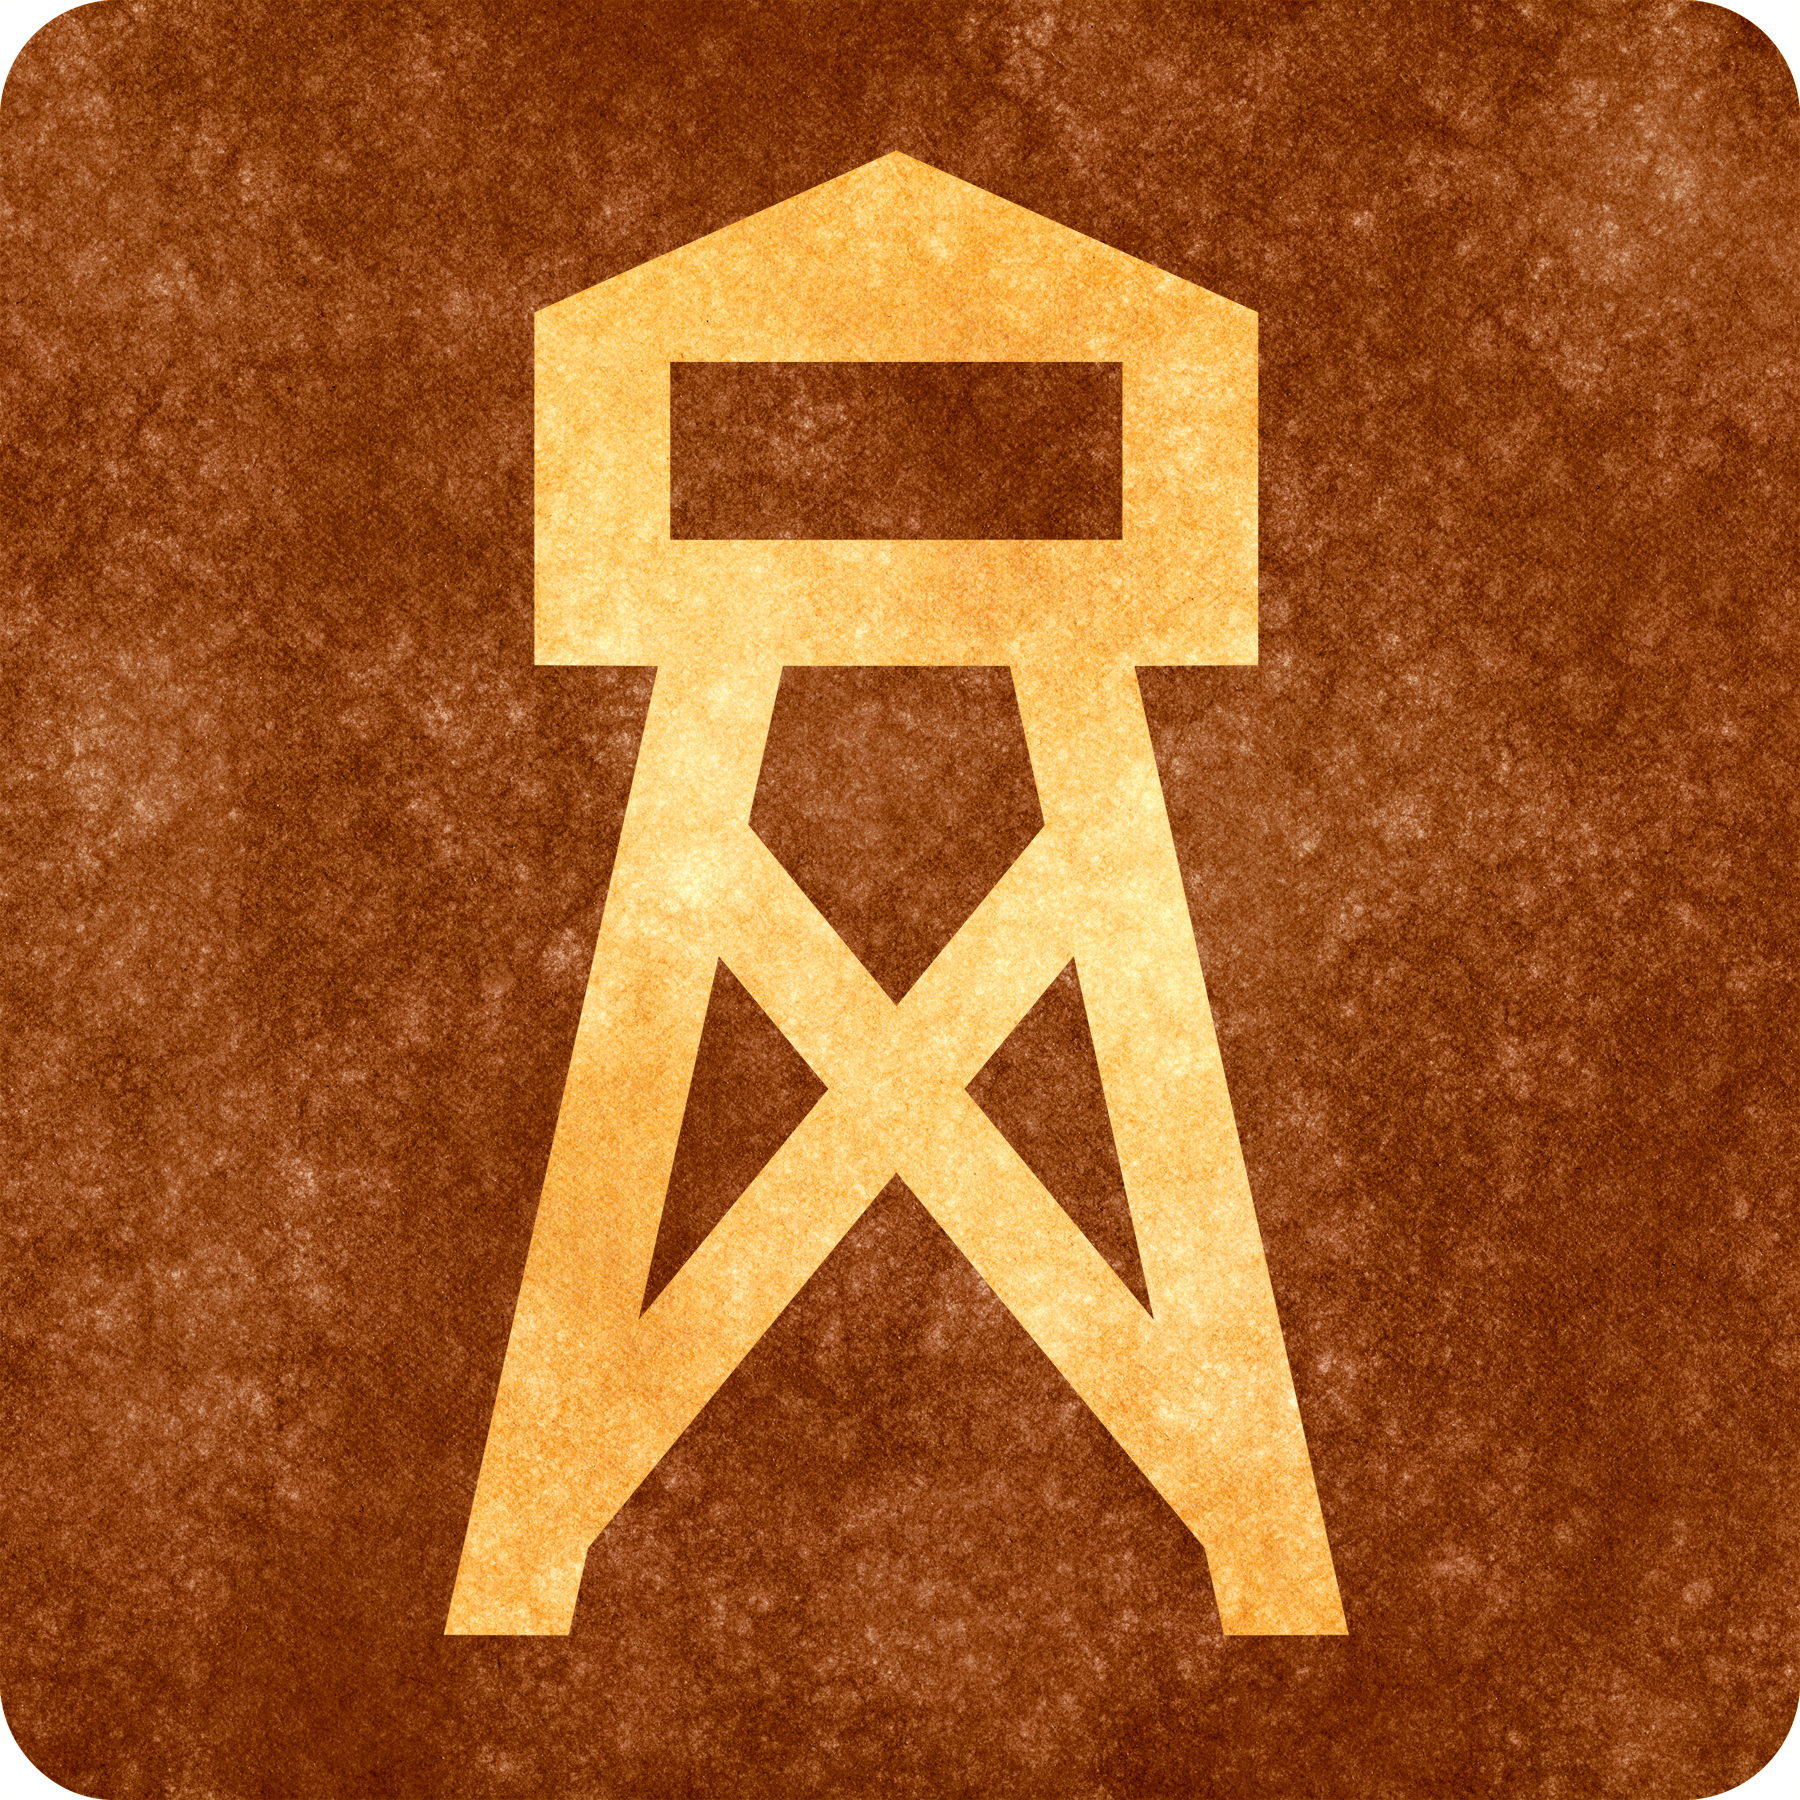 Sepia Grunge Sign - Watch Tower, Age, Picture, Res, Resolution, HQ Photo